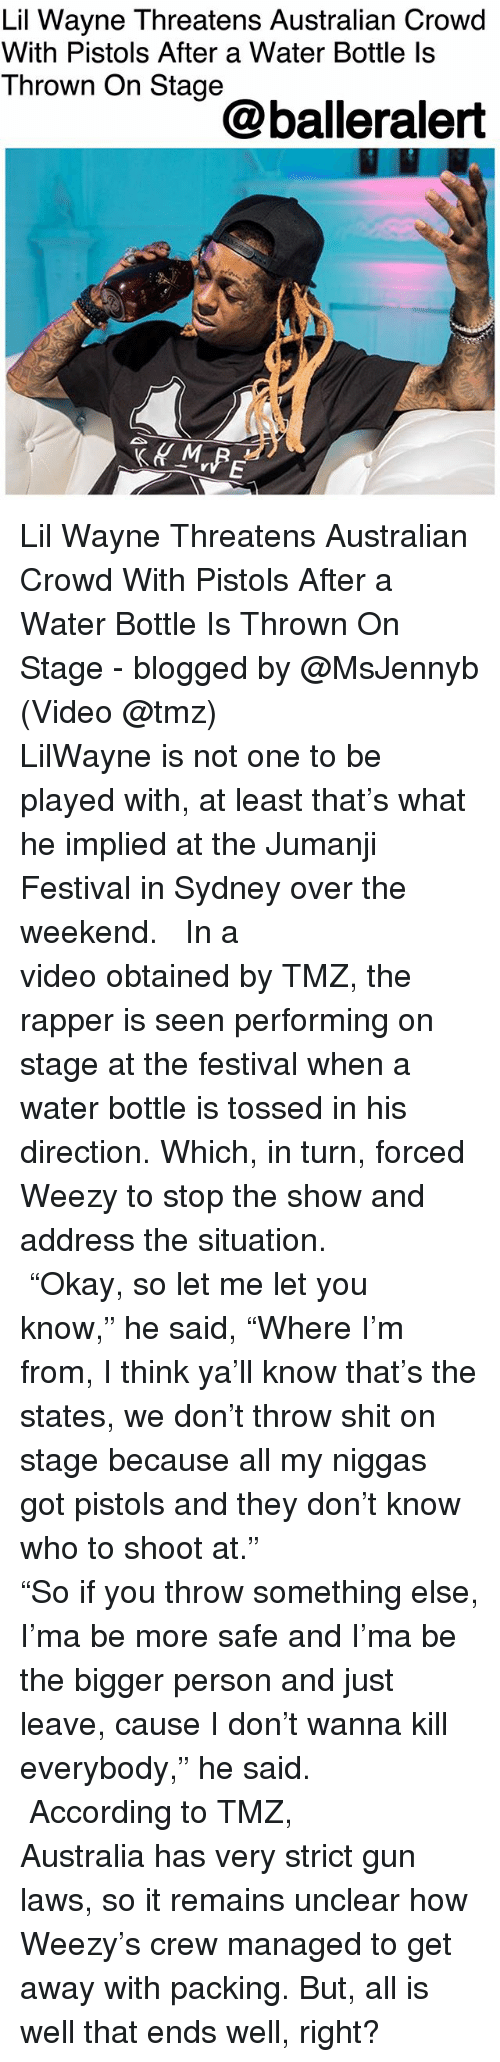 "Lil Wayne, Memes, and Shit: Lil Wayne Threatens Australian Crowd  With Pistols After a Water Bottle ls  Thrown On Stage  @balleralert Lil Wayne Threatens Australian Crowd With Pistols After a Water Bottle Is Thrown On Stage - blogged by @MsJennyb (Video @tmz) ⠀⠀⠀⠀⠀⠀⠀⠀⠀ ⠀⠀⠀⠀⠀⠀⠀⠀⠀ LilWayne is not one to be played with, at least that's what he implied at the Jumanji Festival in Sydney over the weekend. ⠀⠀⠀⠀⠀⠀⠀⠀⠀ ⠀⠀⠀⠀⠀⠀⠀⠀⠀ In a video obtained by TMZ, the rapper is seen performing on stage at the festival when a water bottle is tossed in his direction. Which, in turn, forced Weezy to stop the show and address the situation. ⠀⠀⠀⠀⠀⠀⠀⠀⠀ ⠀⠀⠀⠀⠀⠀⠀⠀⠀ ""Okay, so let me let you know,"" he said, ""Where I'm from, I think ya'll know that's the states, we don't throw shit on stage because all my niggas got pistols and they don't know who to shoot at."" ⠀⠀⠀⠀⠀⠀⠀⠀⠀ ⠀⠀⠀⠀⠀⠀⠀⠀⠀ ""So if you throw something else, I'ma be more safe and I'ma be the bigger person and just leave, cause I don't wanna kill everybody,"" he said. ⠀⠀⠀⠀⠀⠀⠀⠀⠀ ⠀⠀⠀⠀⠀⠀⠀⠀⠀ According to TMZ, Australia has very strict gun laws, so it remains unclear how Weezy's crew managed to get away with packing. But, all is well that ends well, right?"